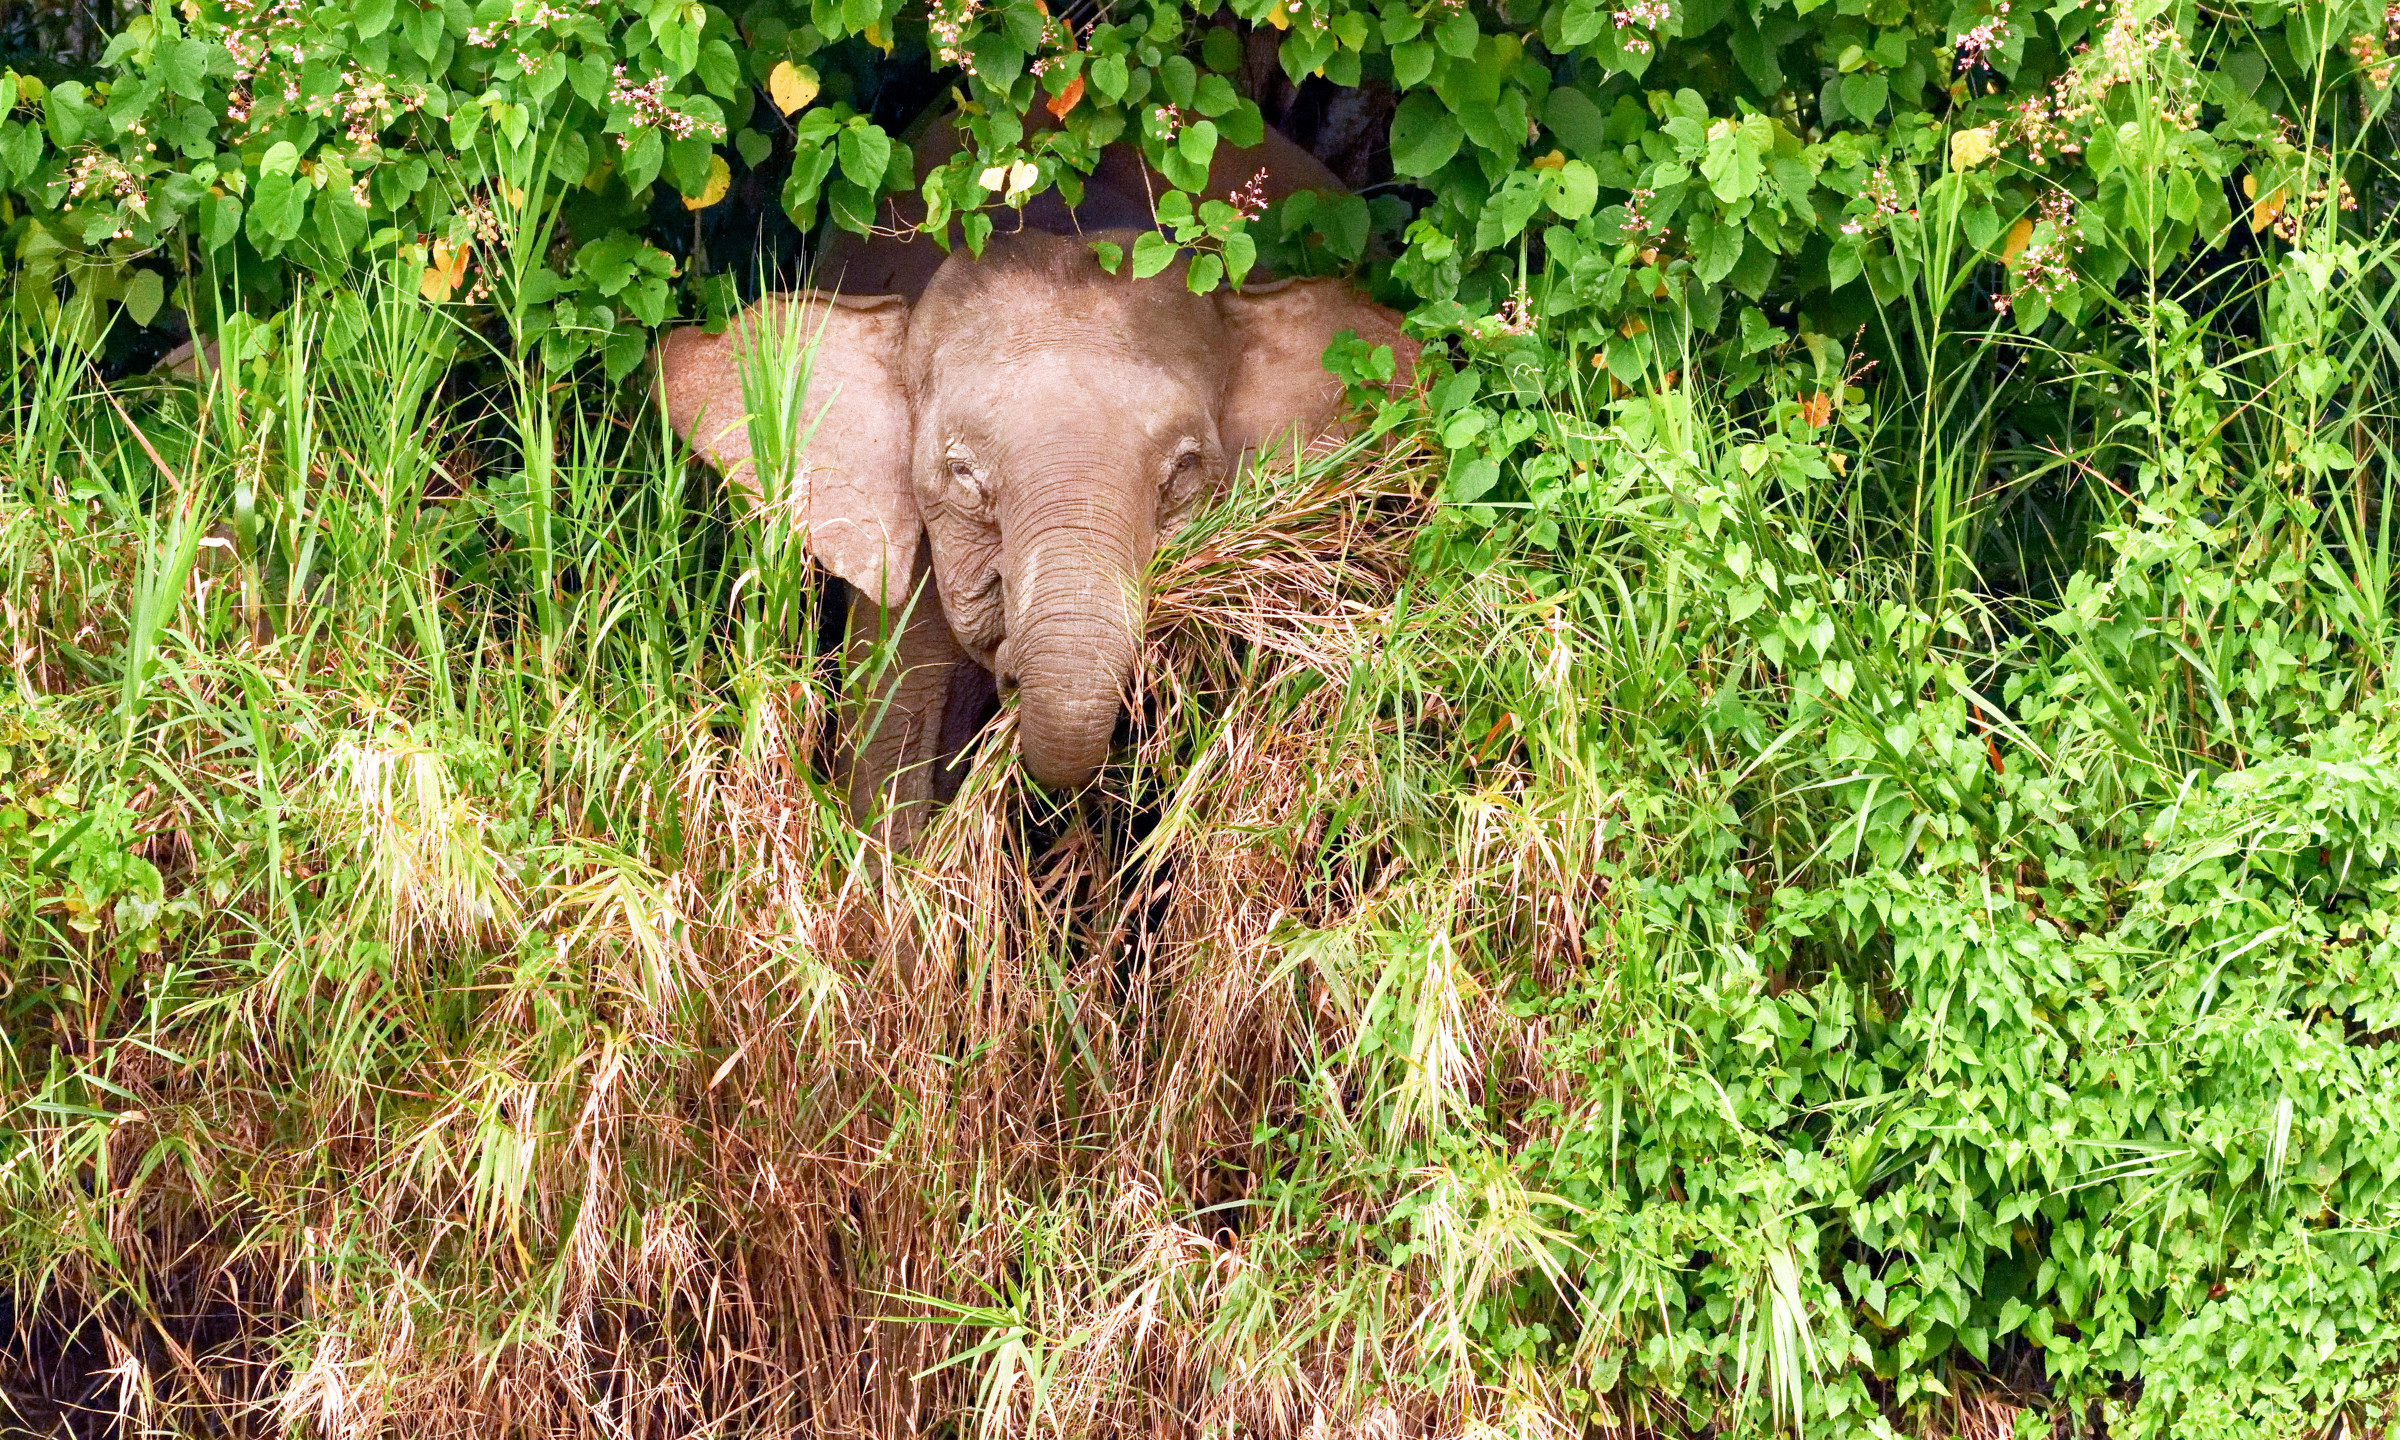 Pigmy Elephant Looking Peeking Out